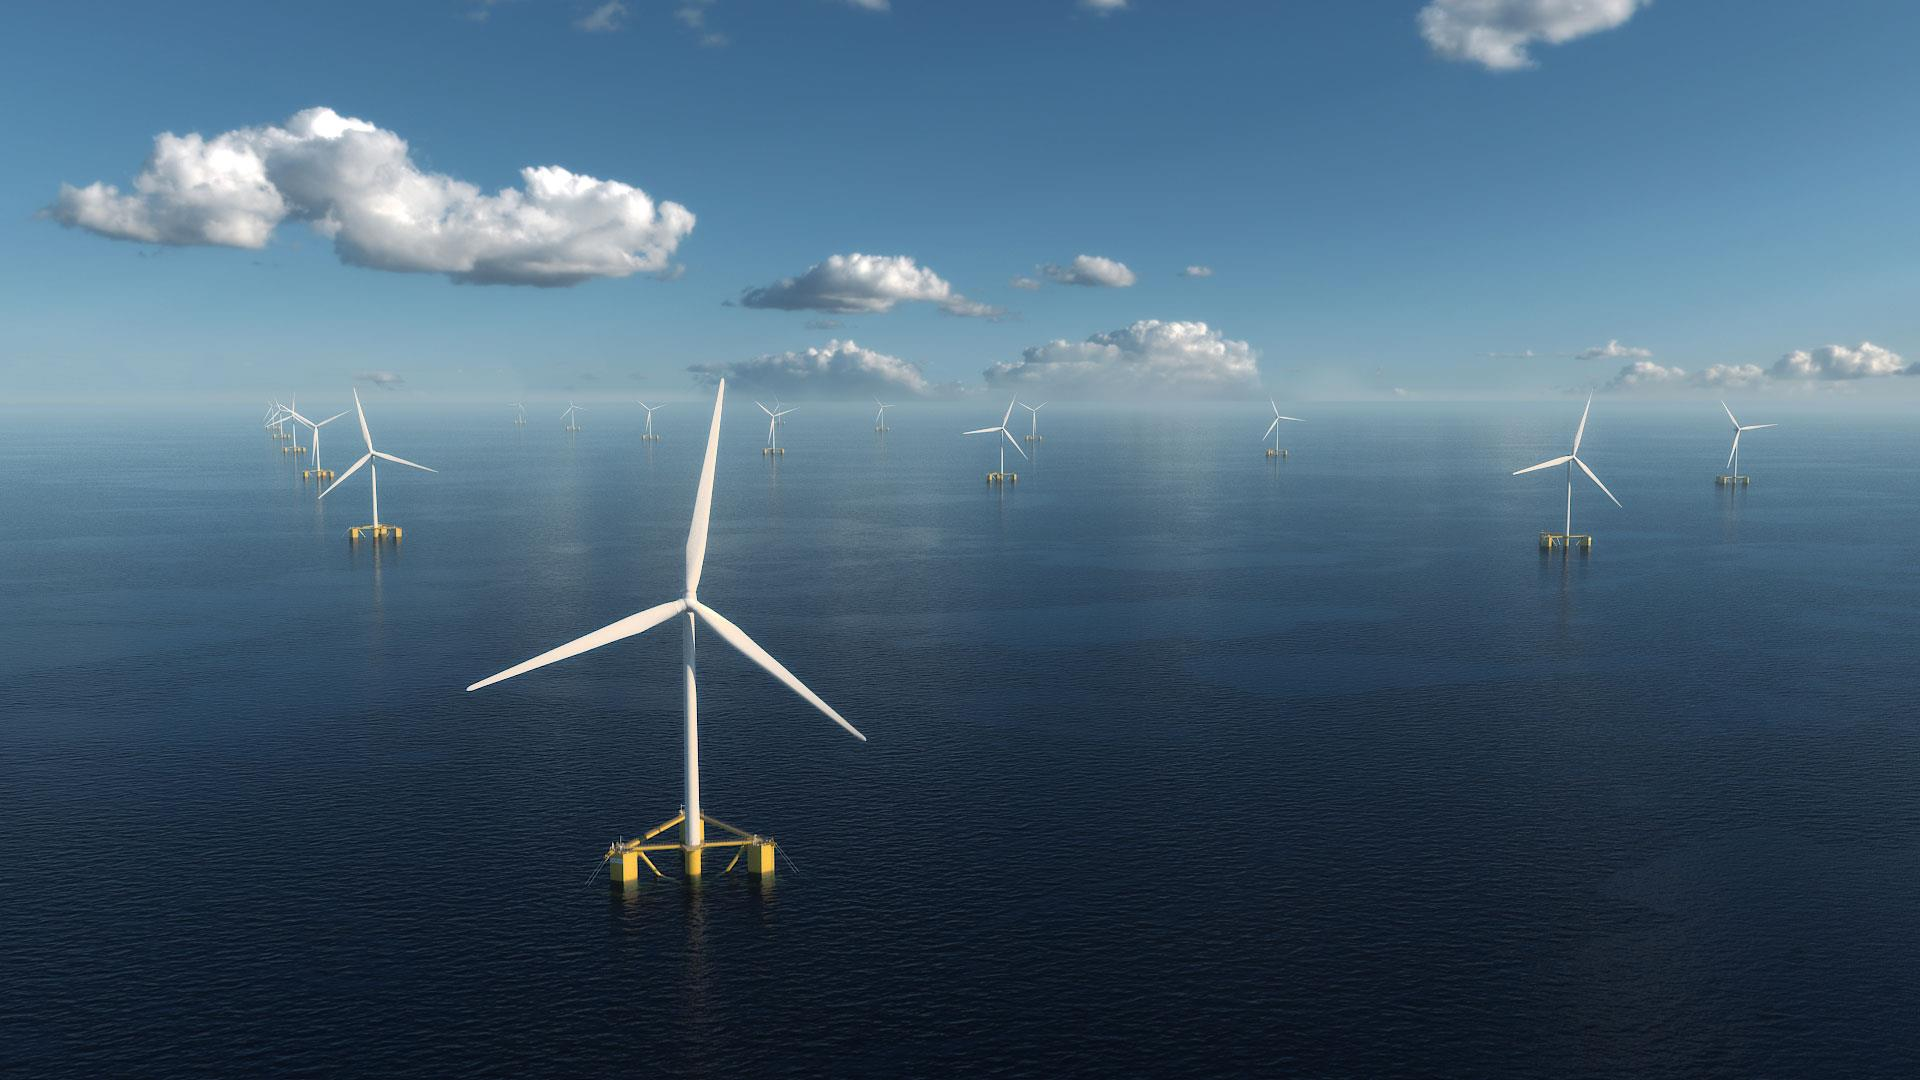 Tri Floater semi submersible floating offshore wind turbine foundations